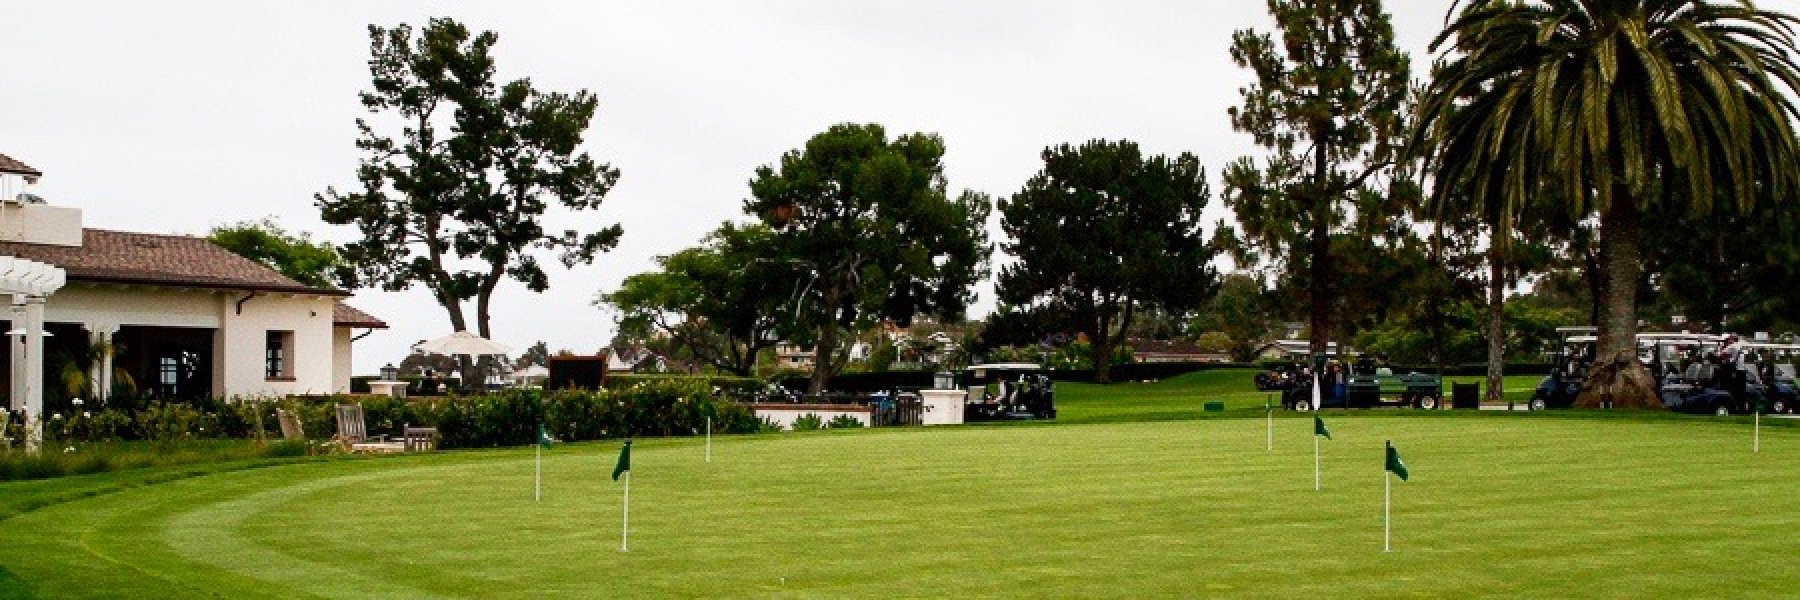 The Country Club is a community of homes in La Jolla California